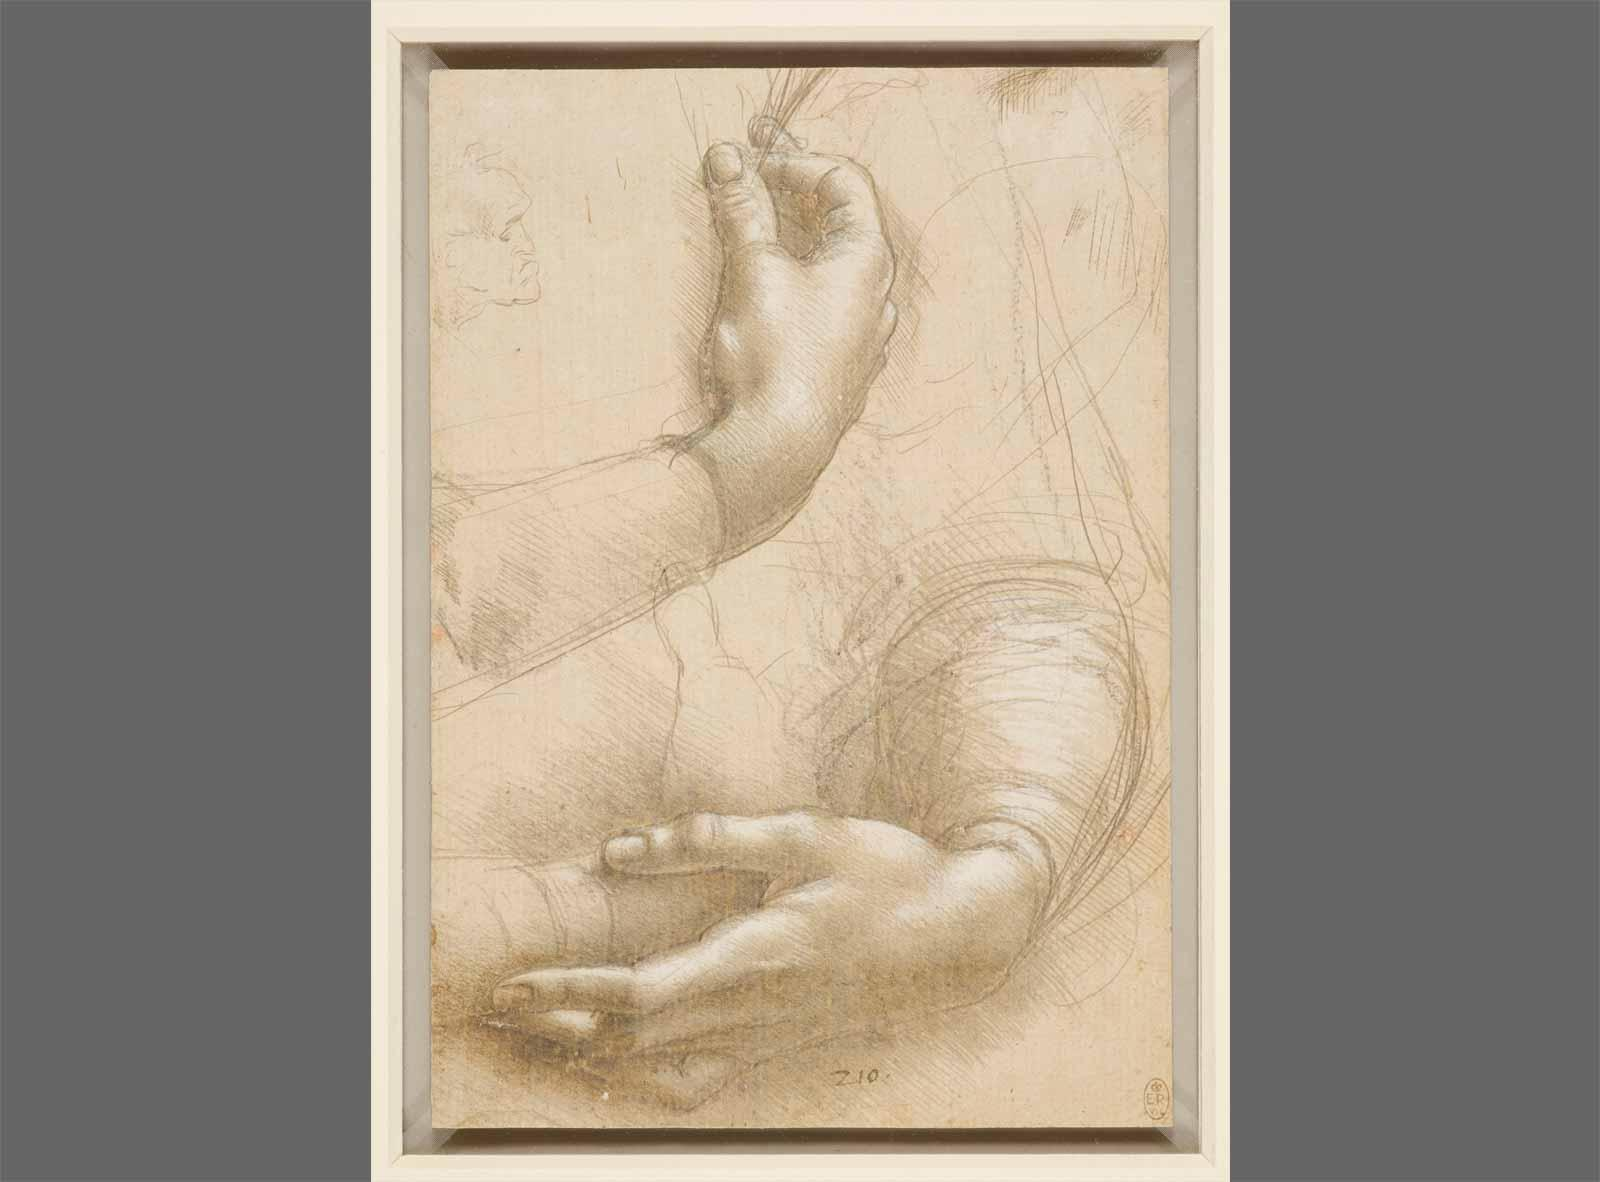 Leonardo da Vinci Woman's Arms and Hands; a Small Man's Head in Profile.